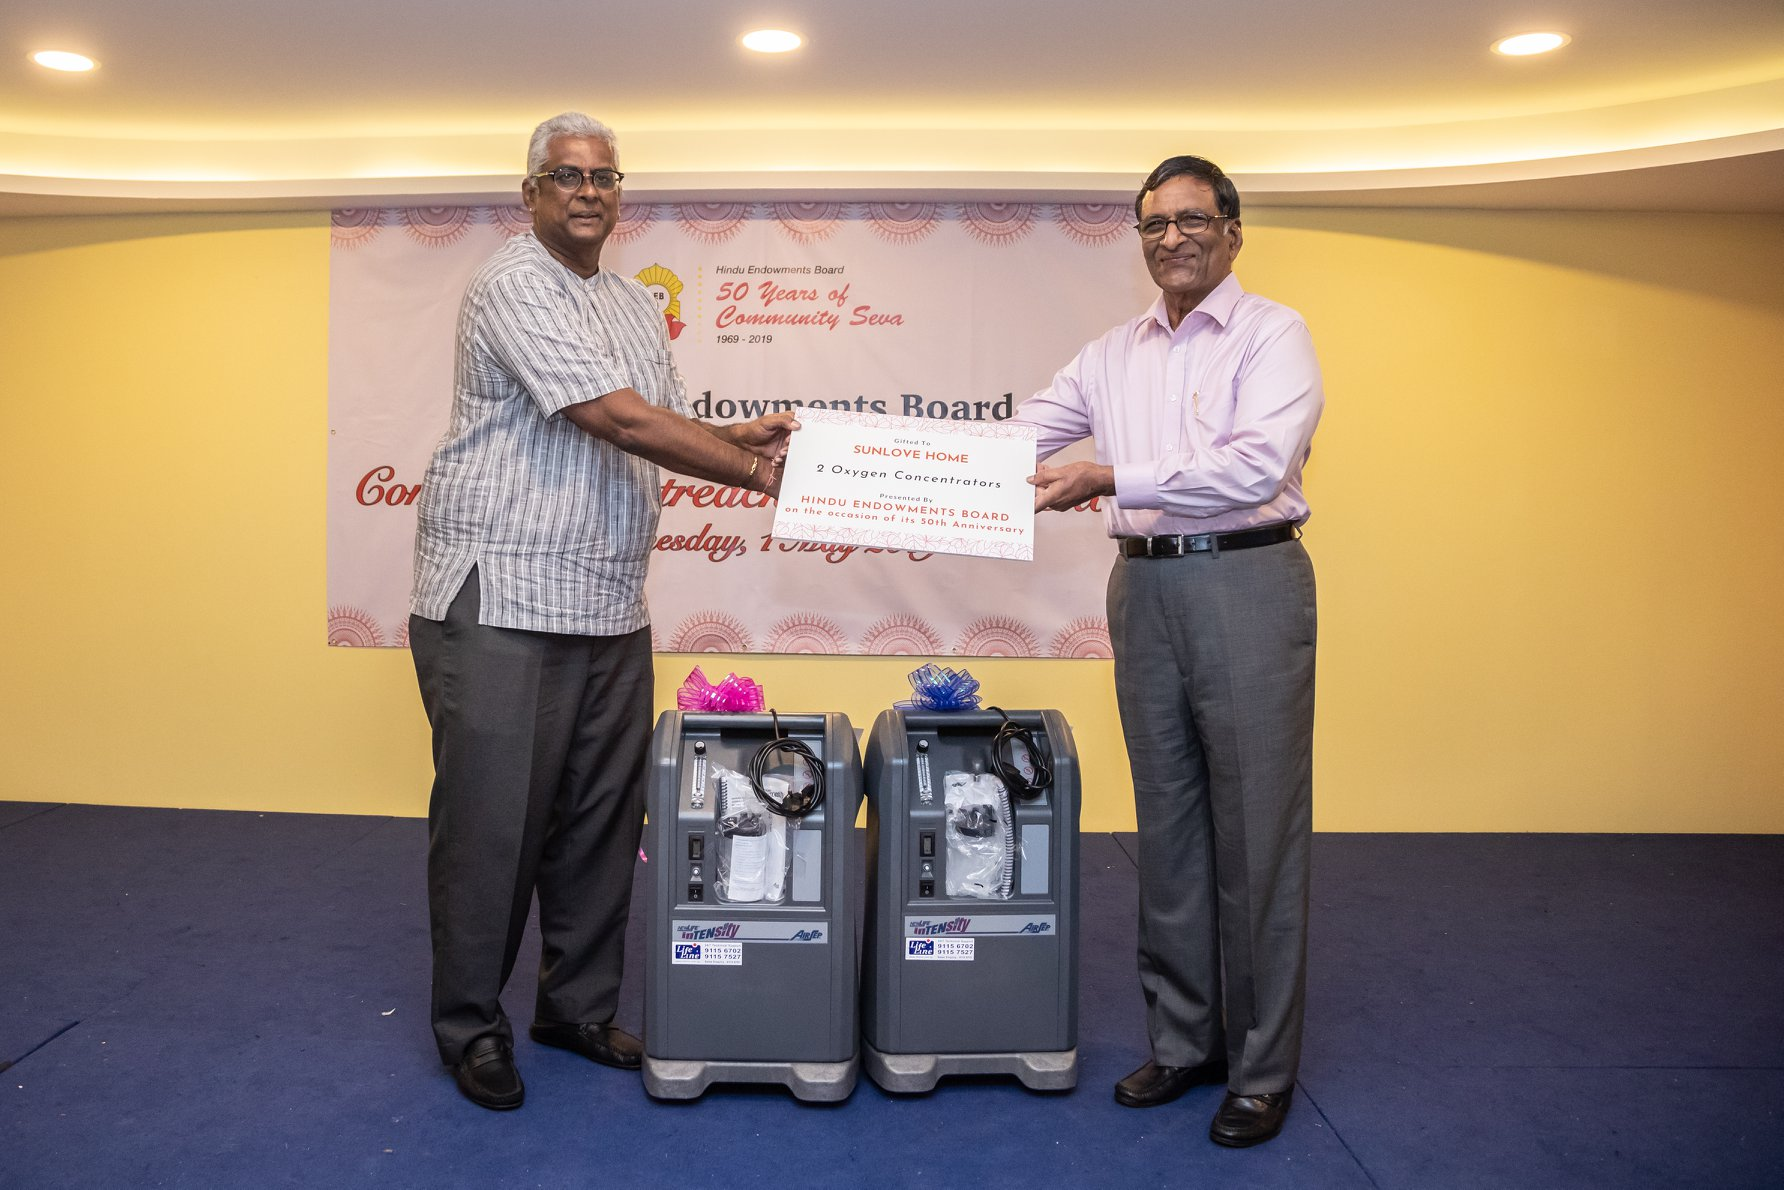 HEB Management Committee members and volunteers from Sri Mariamman Temple presented two oxygen concentrators to Sunlove Home. Photo courtesy: Hindu Endowments Board